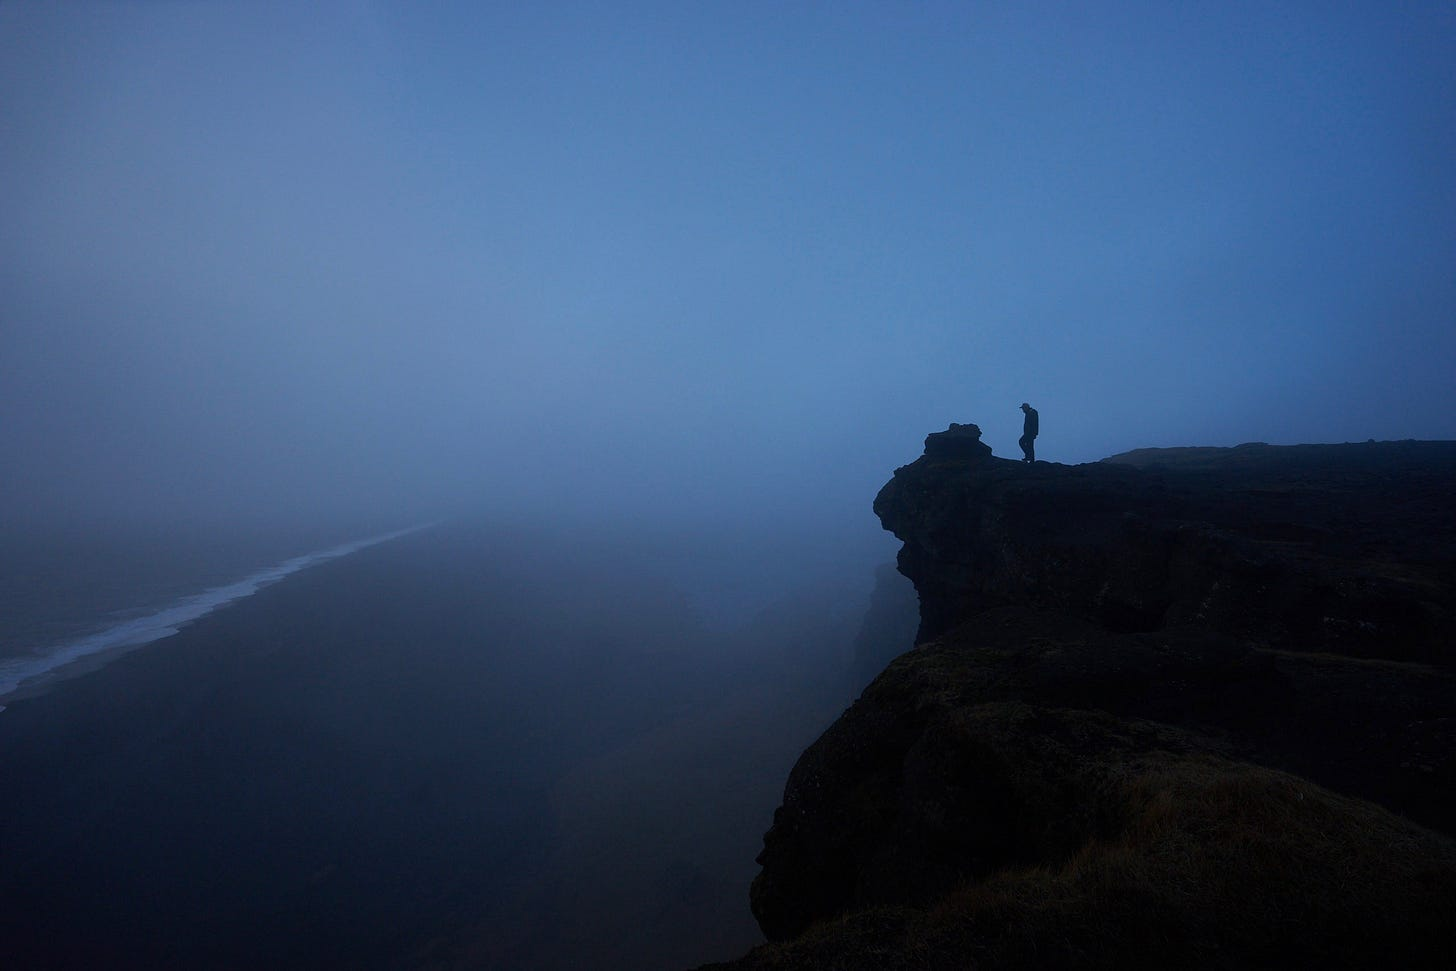 man on the edge of a cliff at night for article by Larry G. Maguire